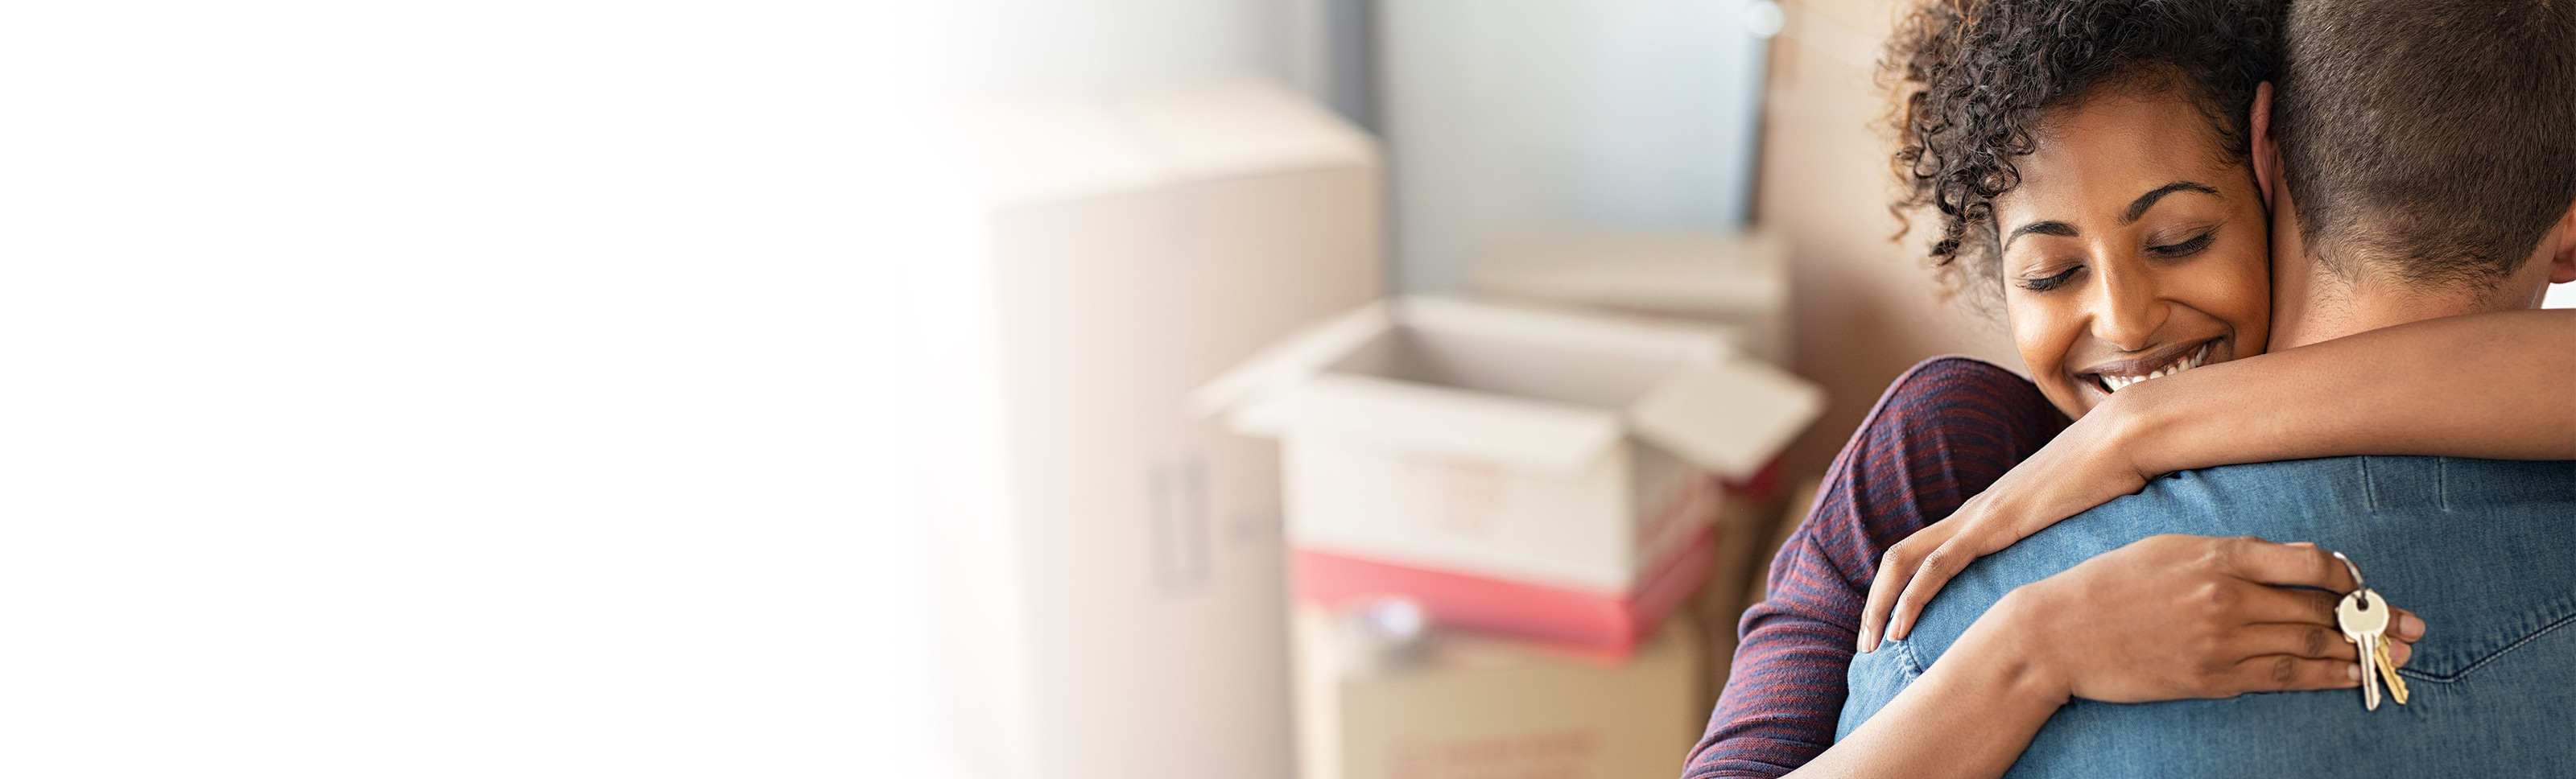 Person getting keys to home